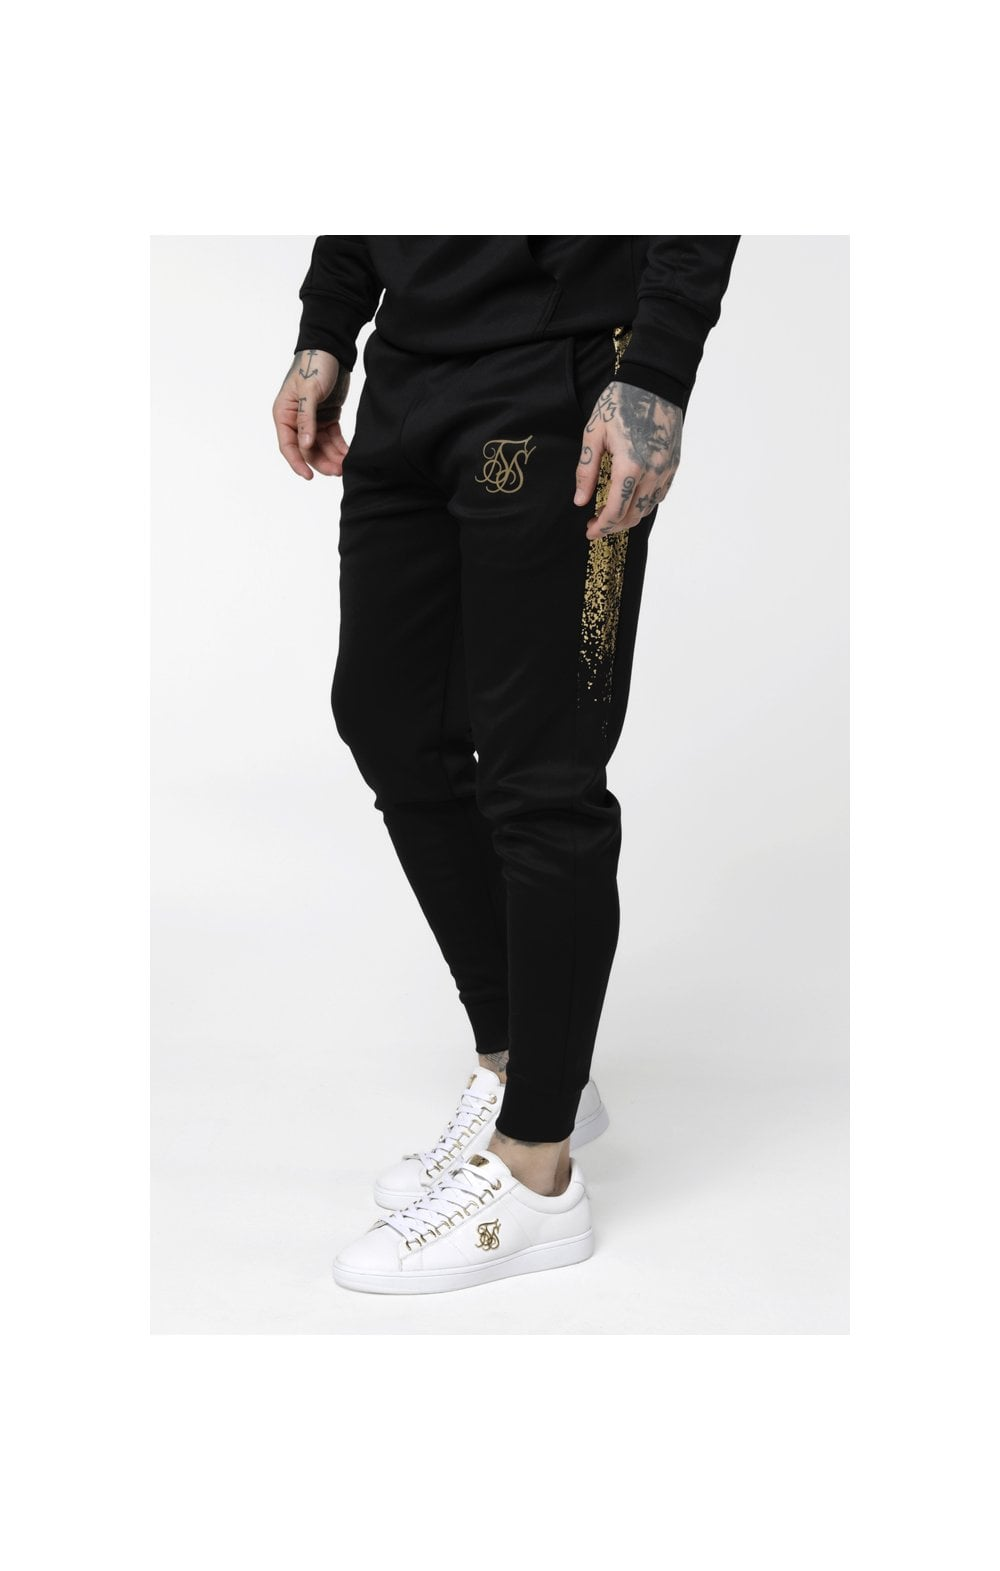 SikSilk Cuffed Cropped Foil Fade Panel Pants - Black & Gold